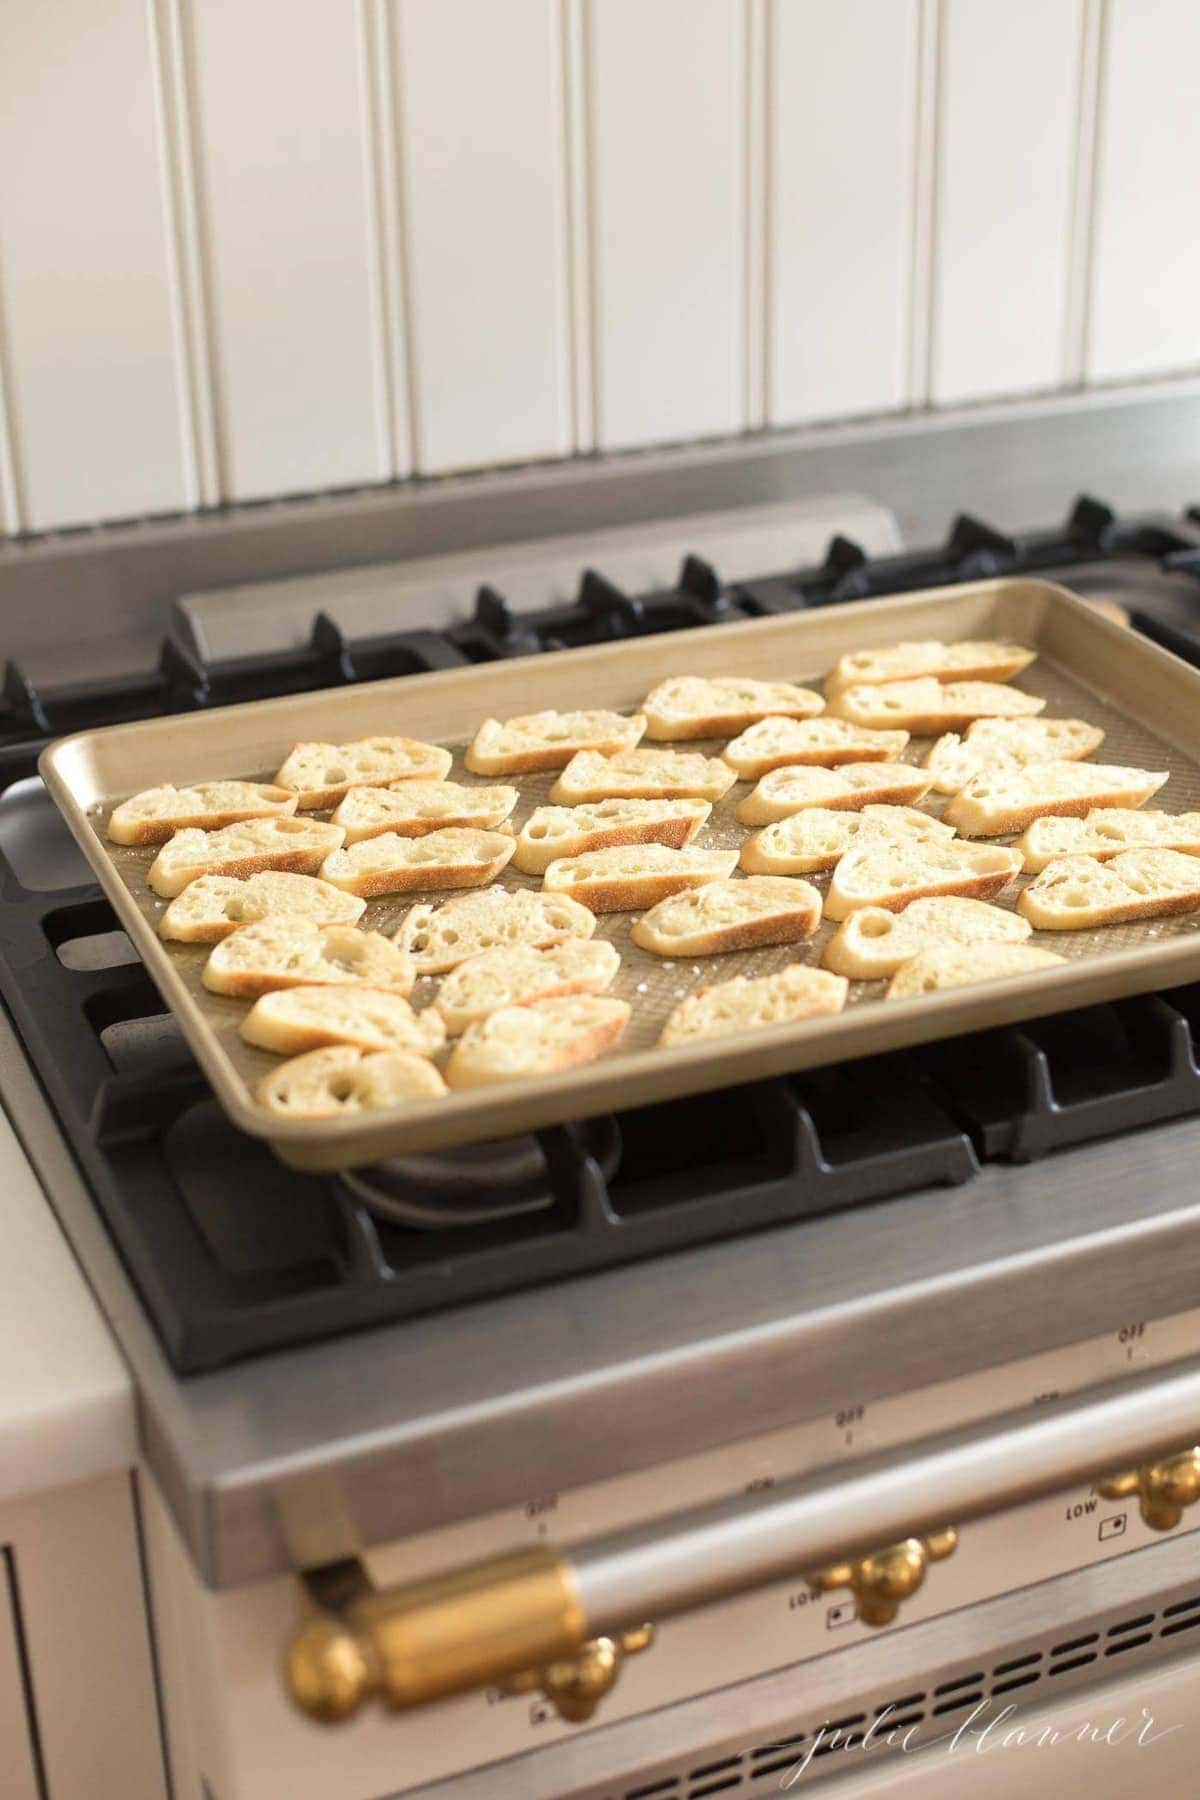 Crostini slices on a gold sheet pan on top of a range.